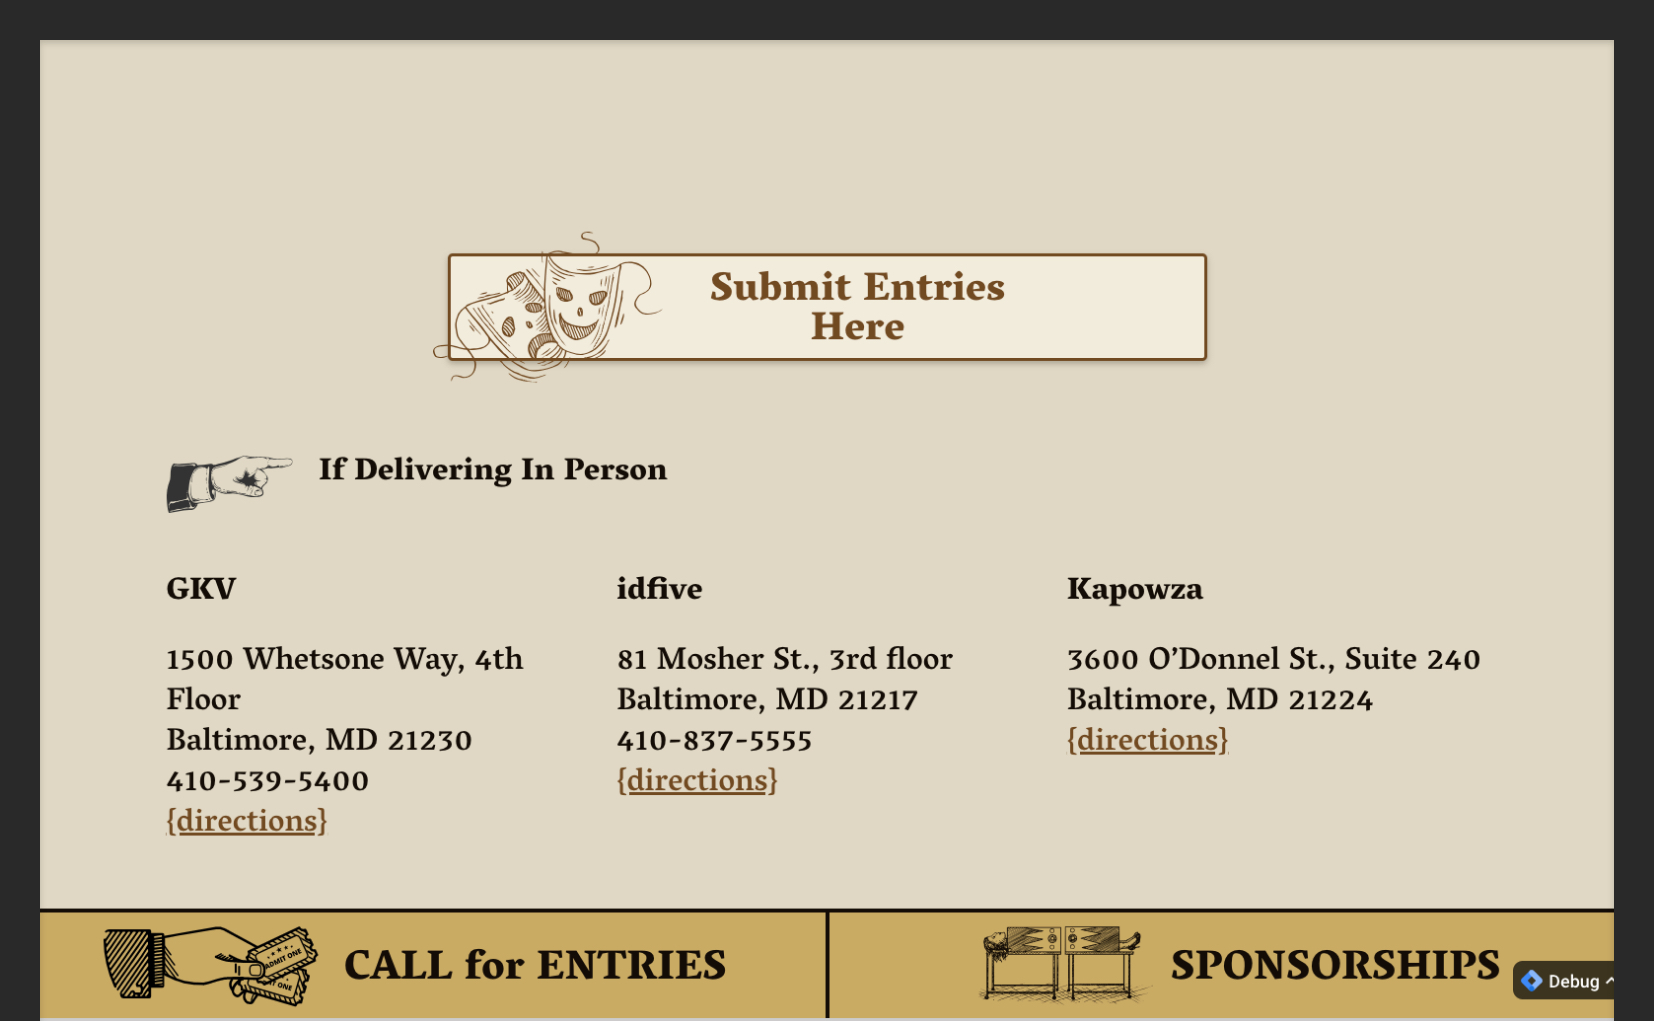 ADDYs Submit Page 2